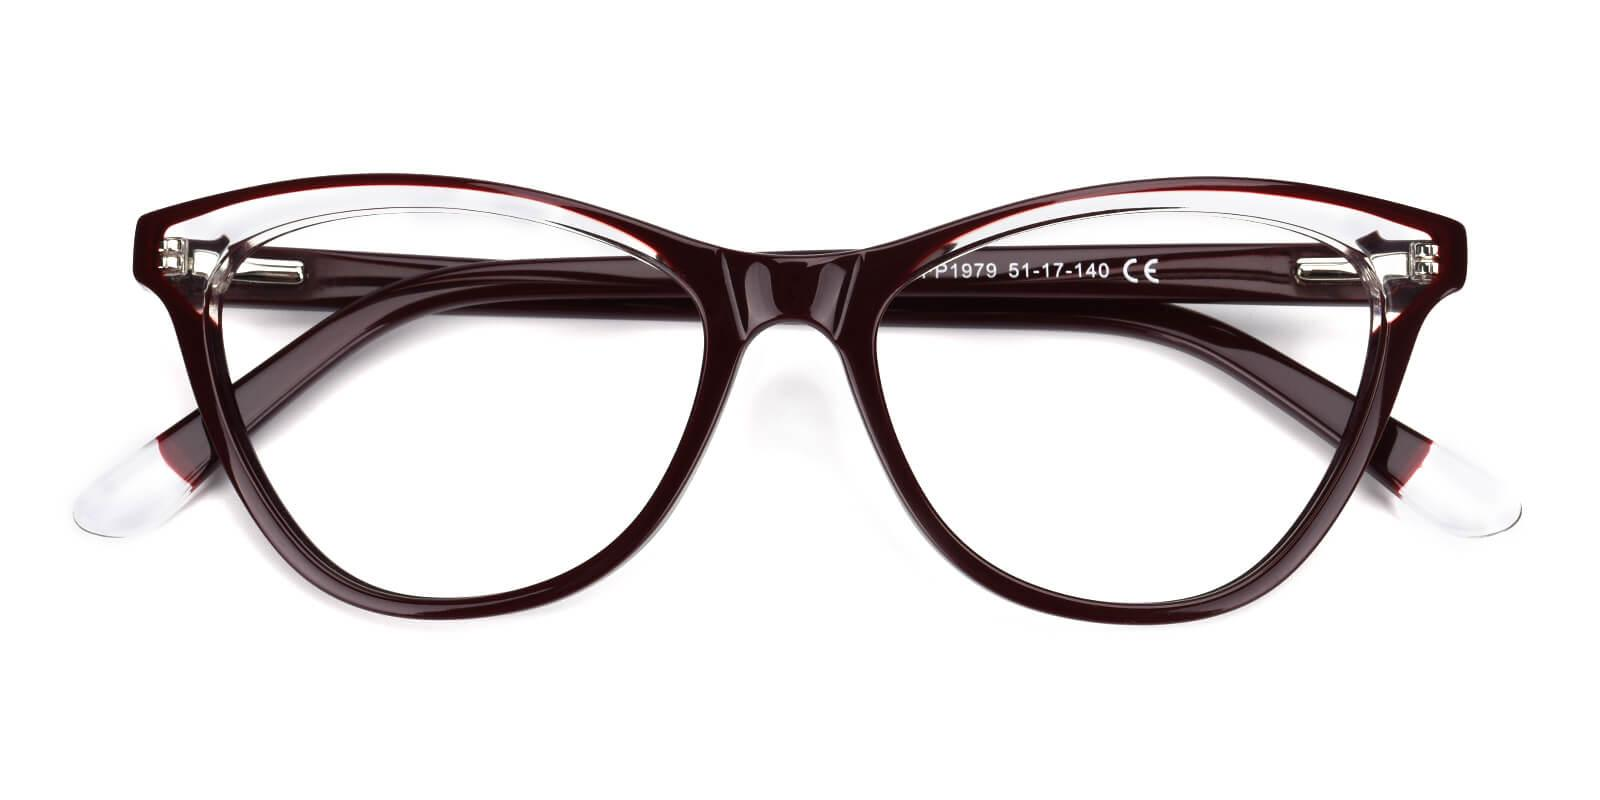 Florencer-Brown-Oval / Cat-Acetate-Eyeglasses-detail